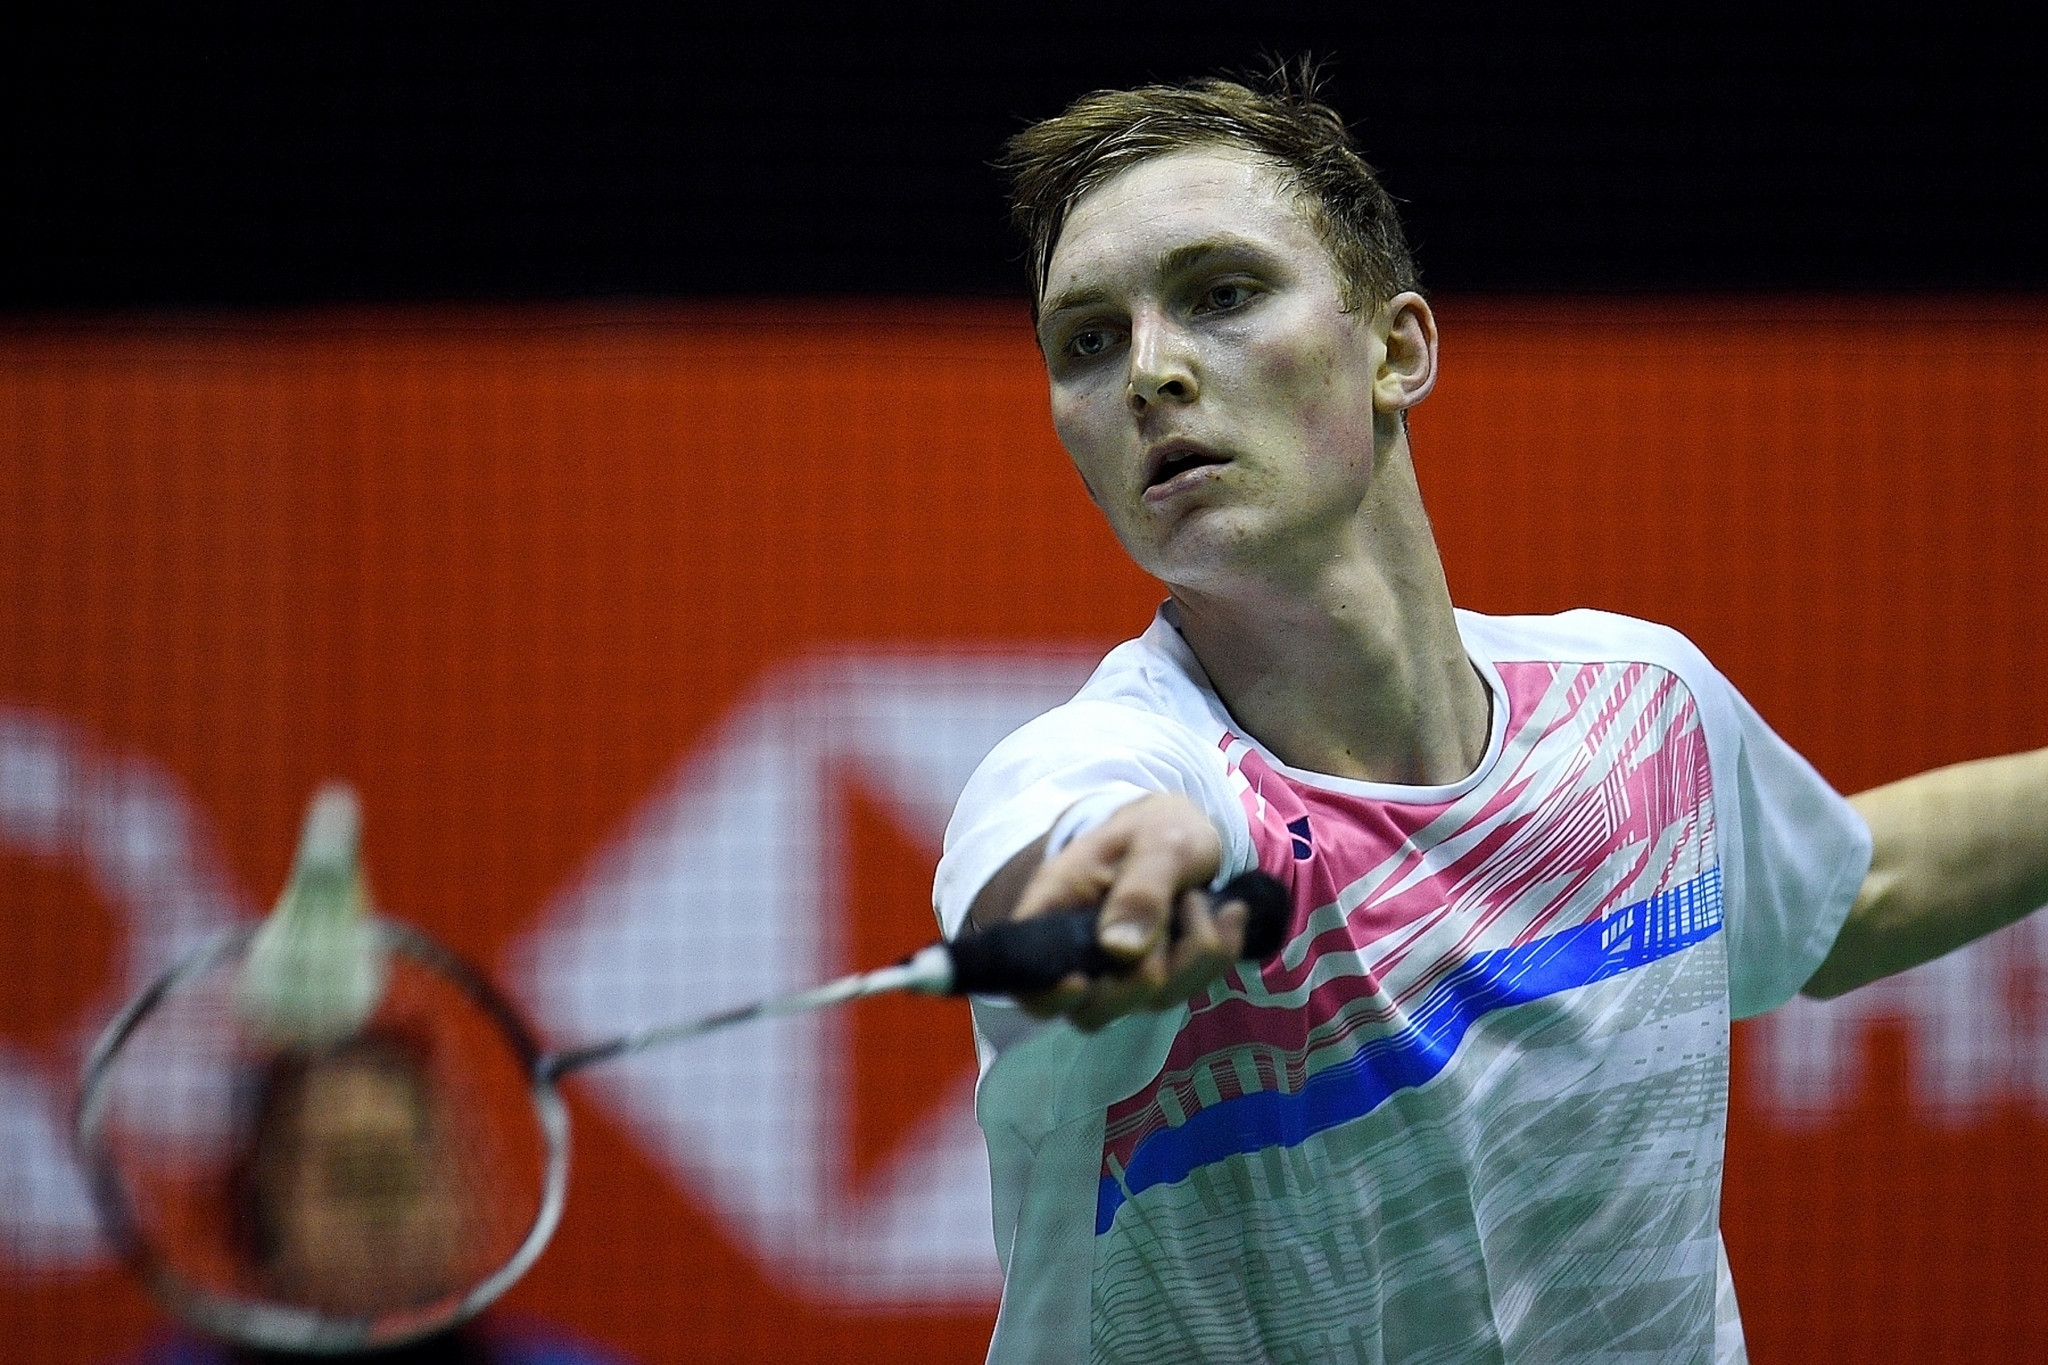 Denmark expected to dominate European Team Badminton Championships in Kazan